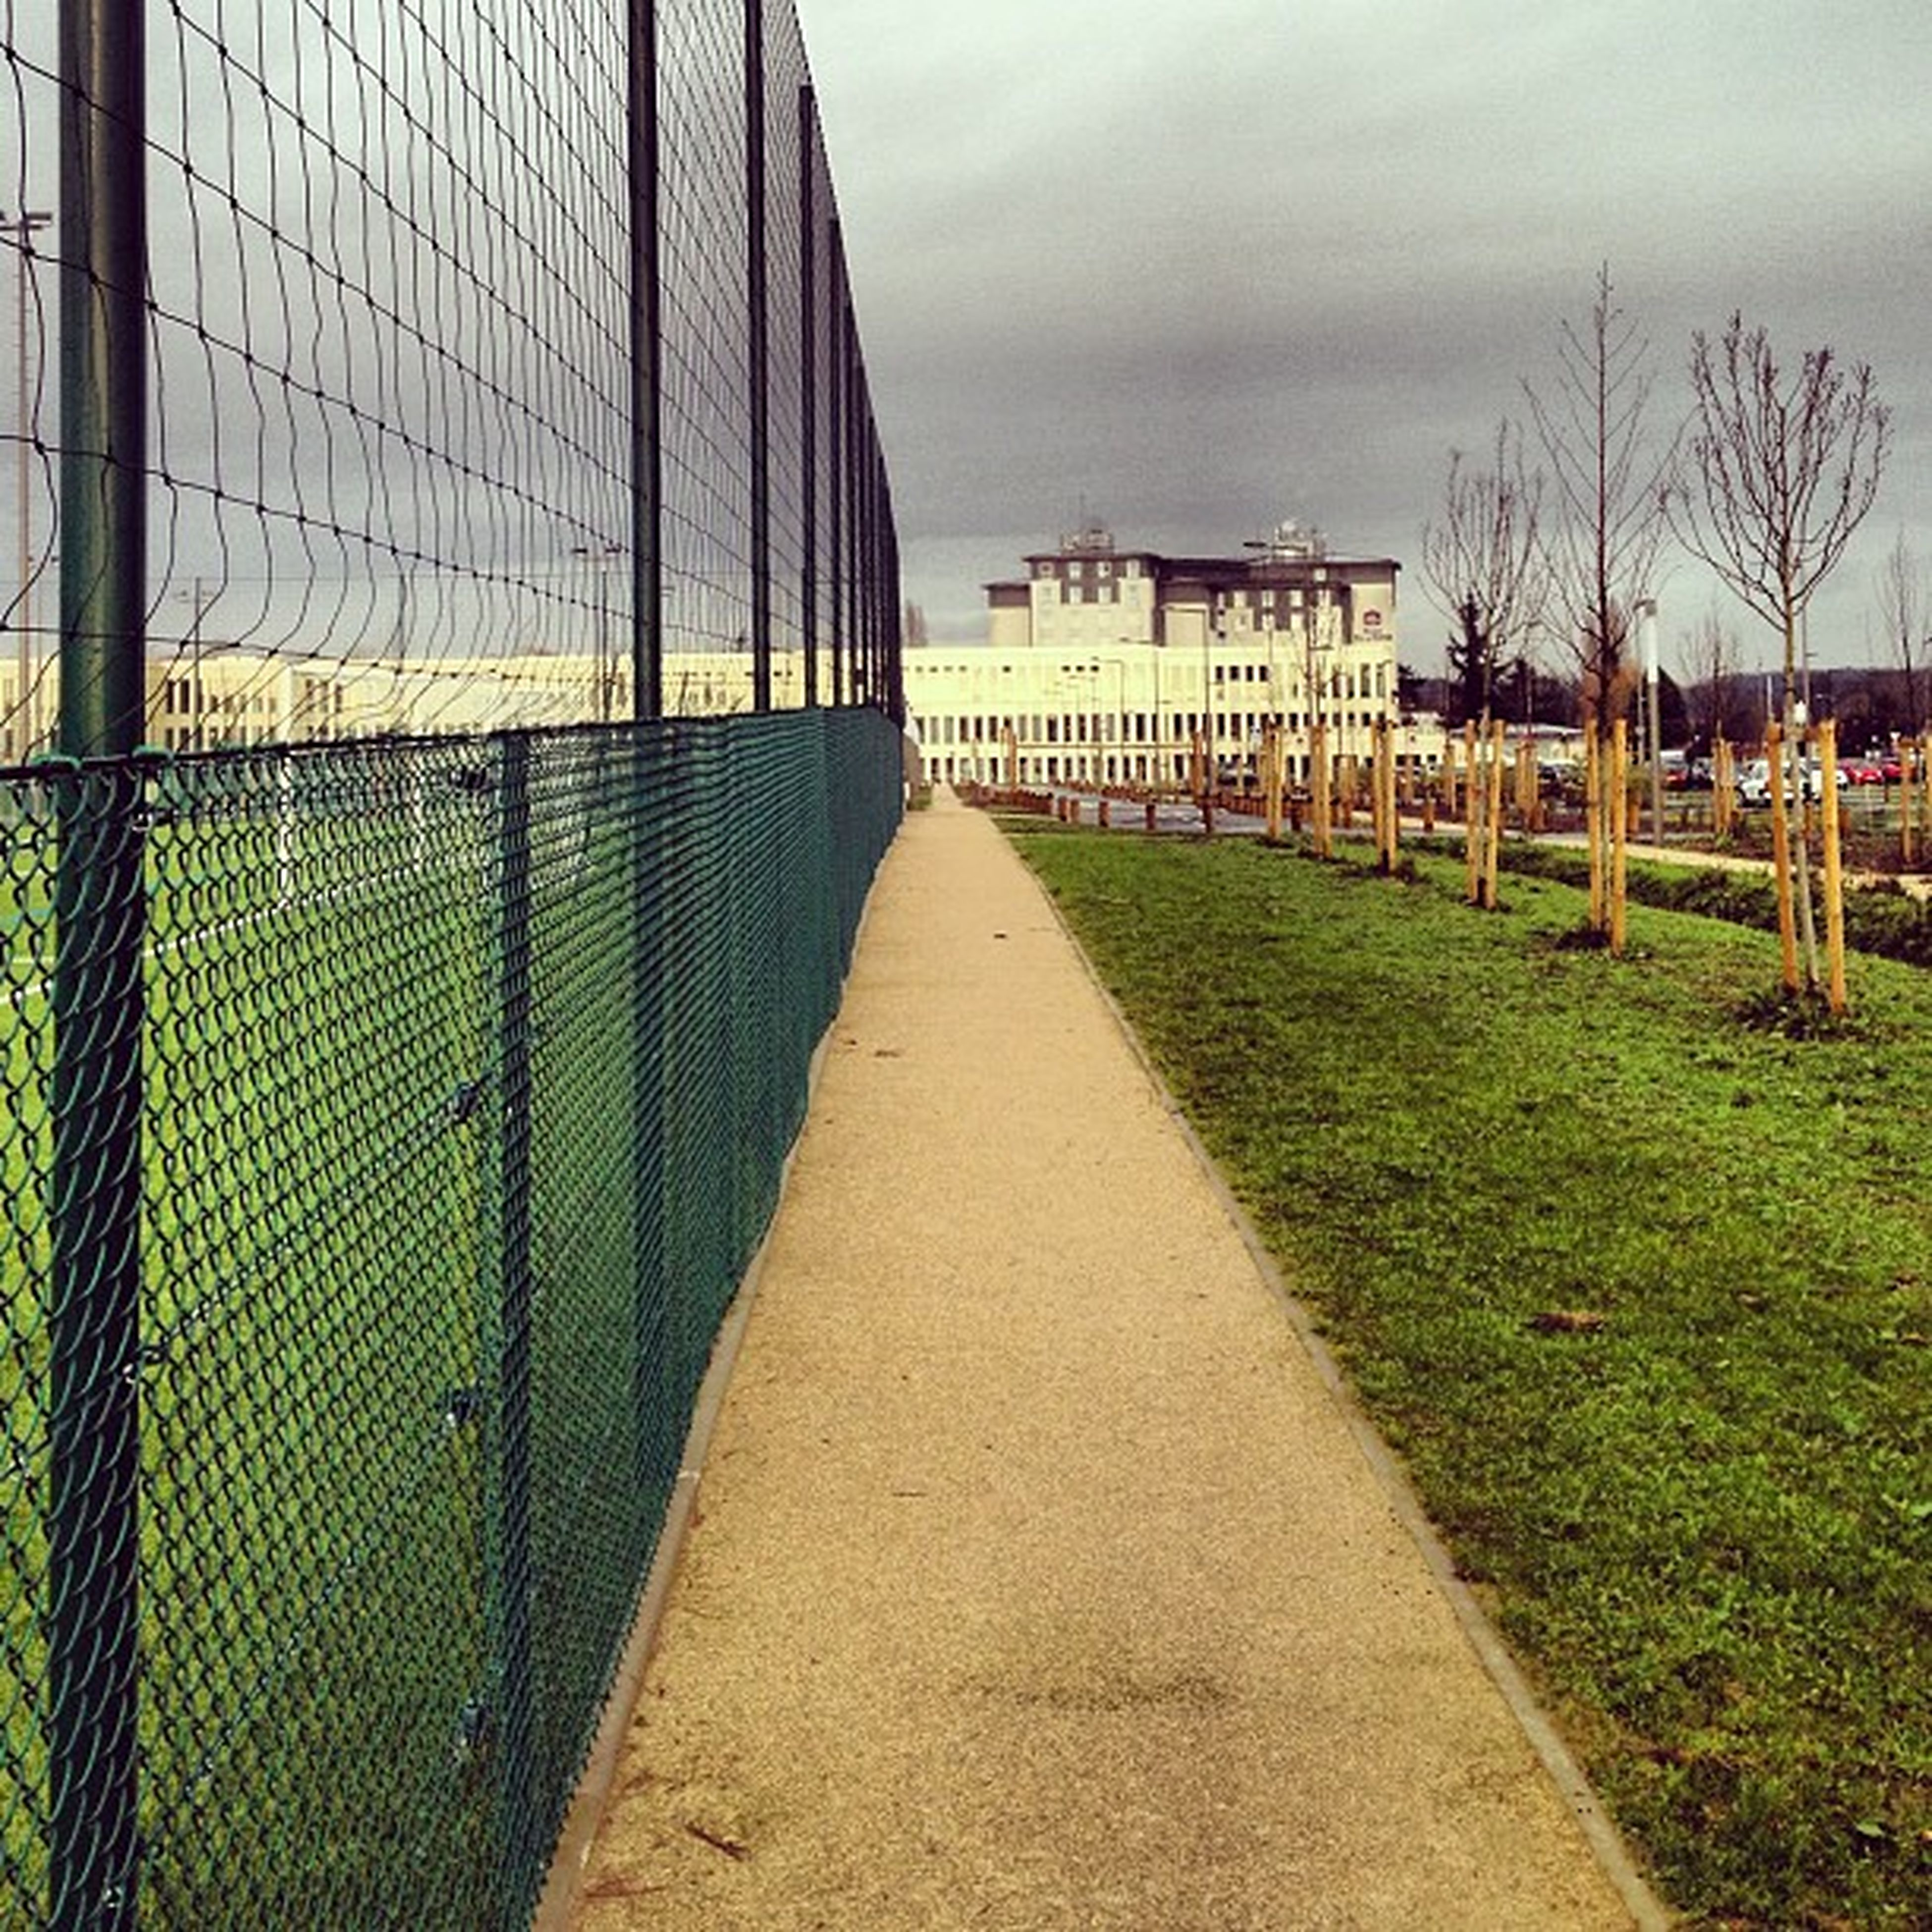 architecture, built structure, the way forward, grass, building exterior, sky, diminishing perspective, vanishing point, fence, walkway, pathway, tree, cloud - sky, footpath, railing, empty, day, outdoors, no people, cloud